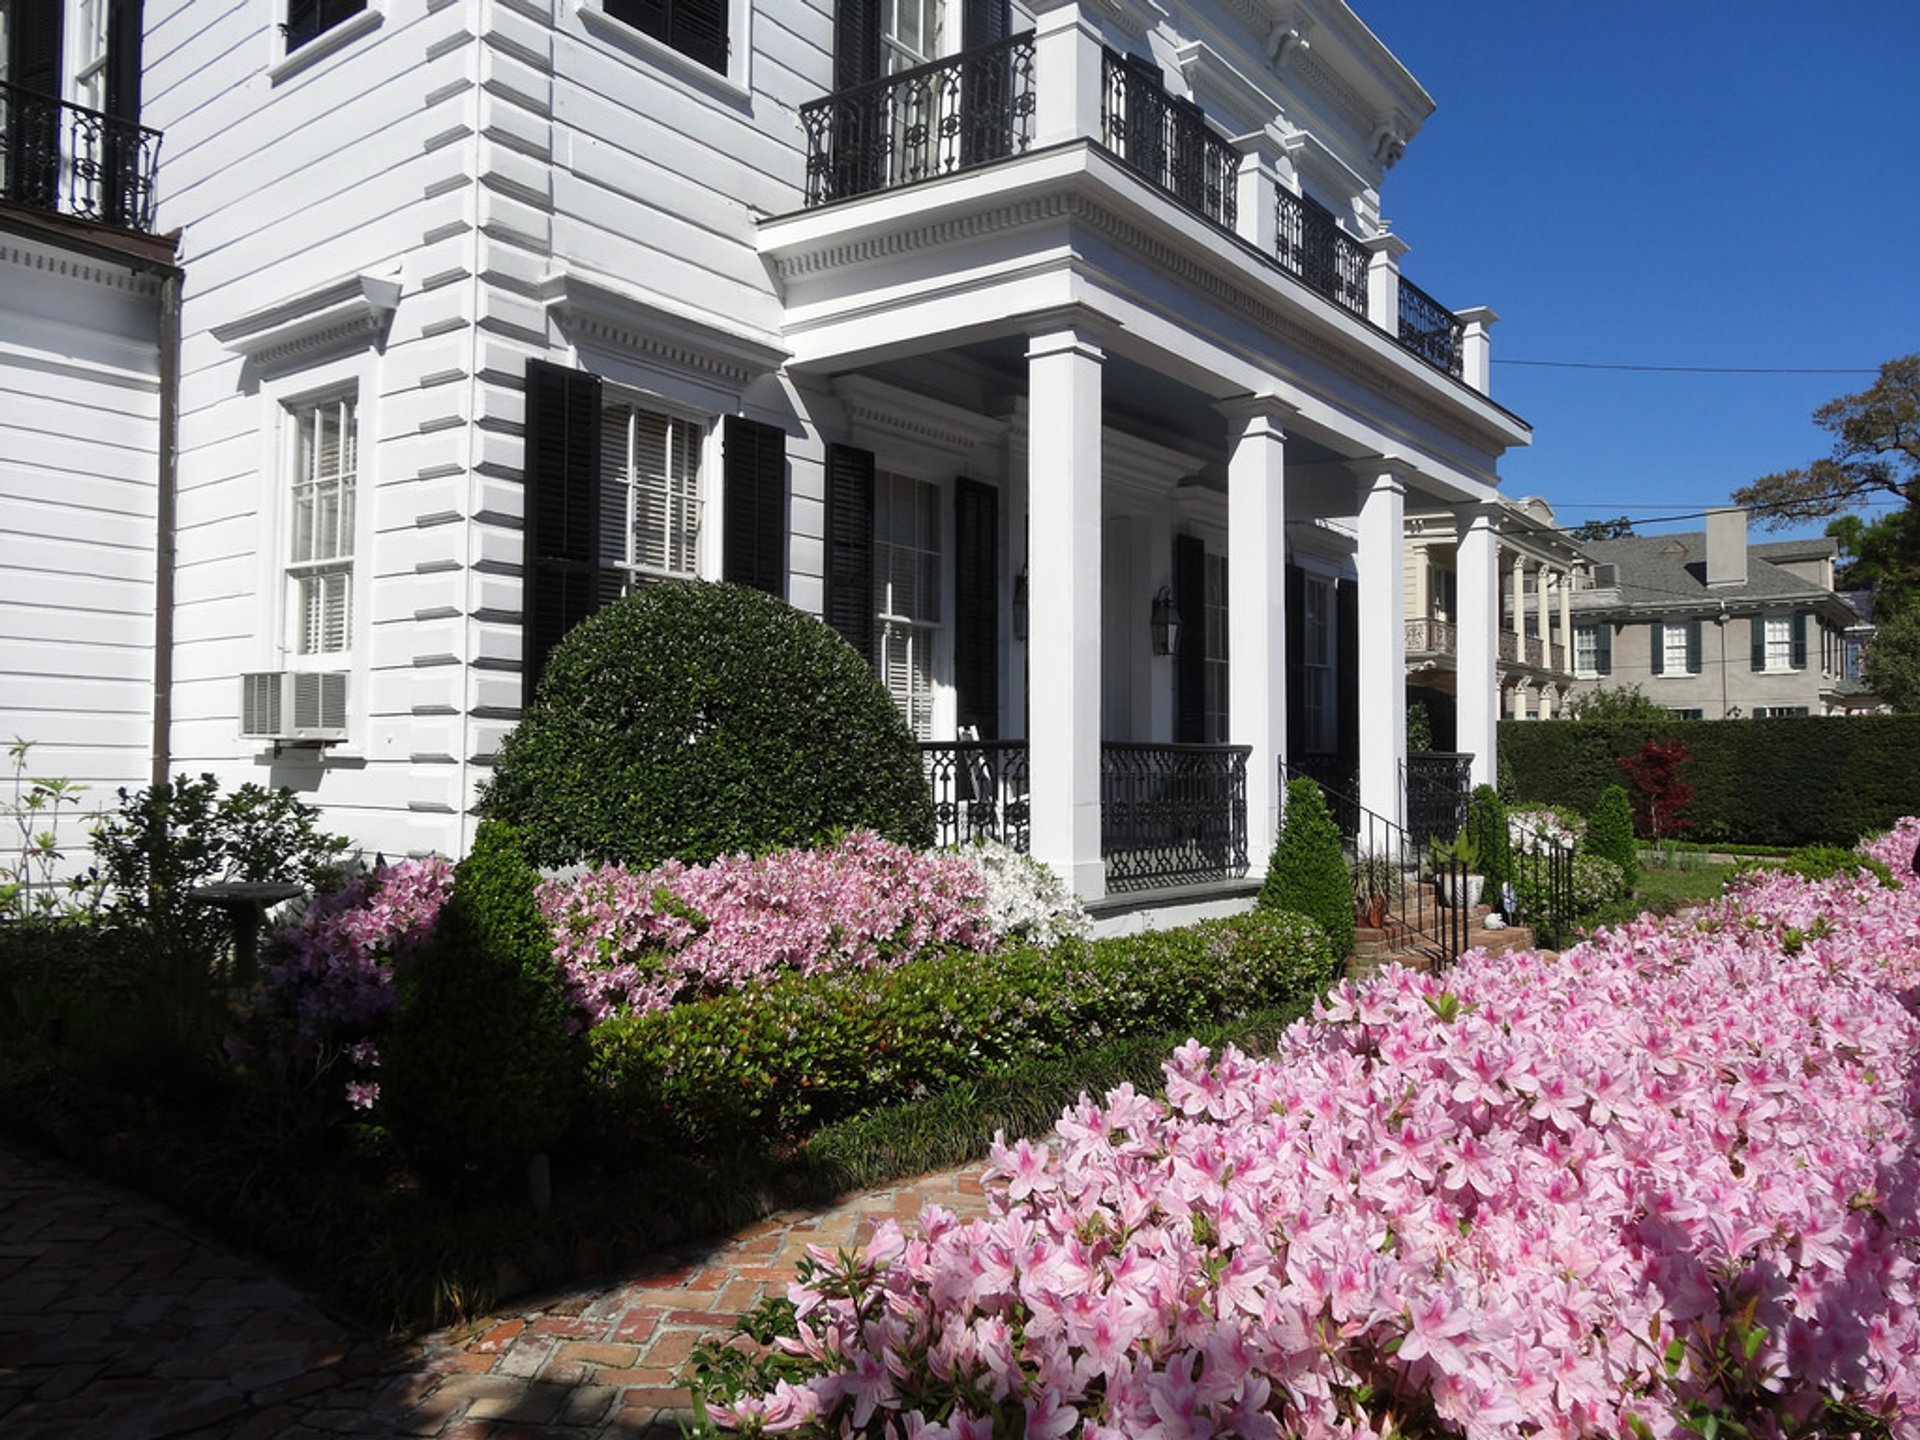 Azaleas in New Orleans - Best Season